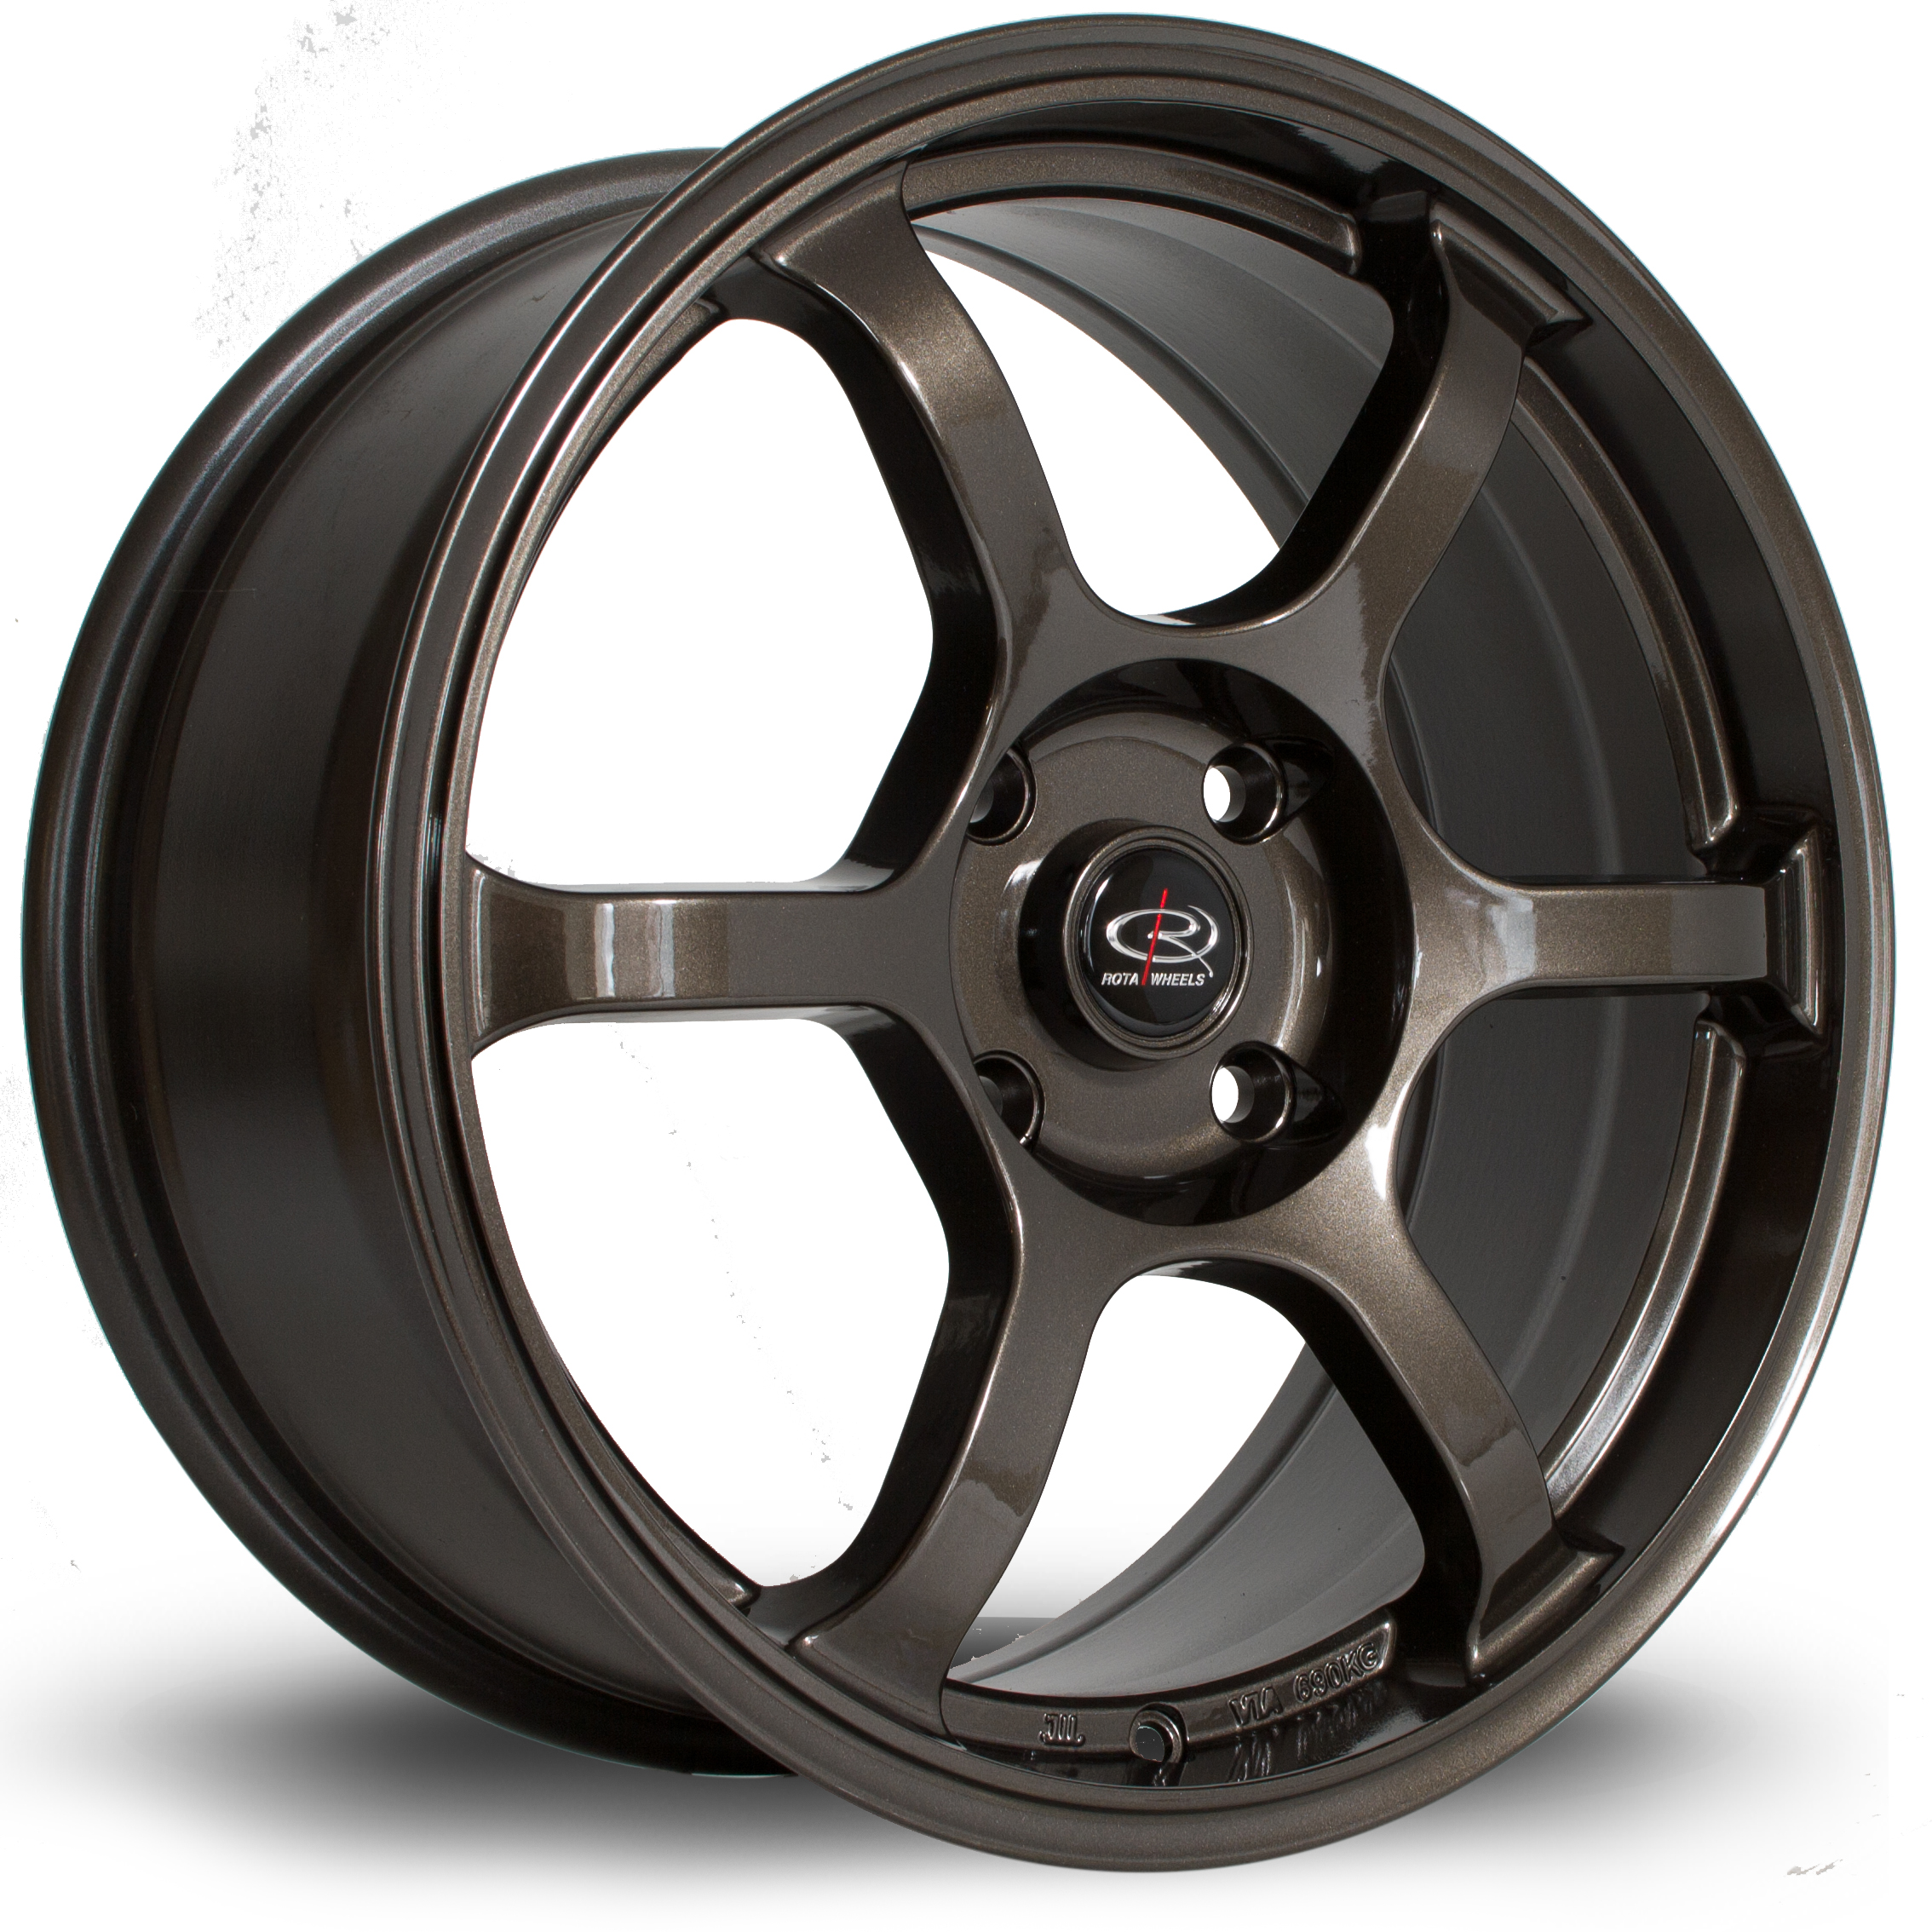 ROTA BOOST 7,5x17 4x114,3 ET48 GOLD